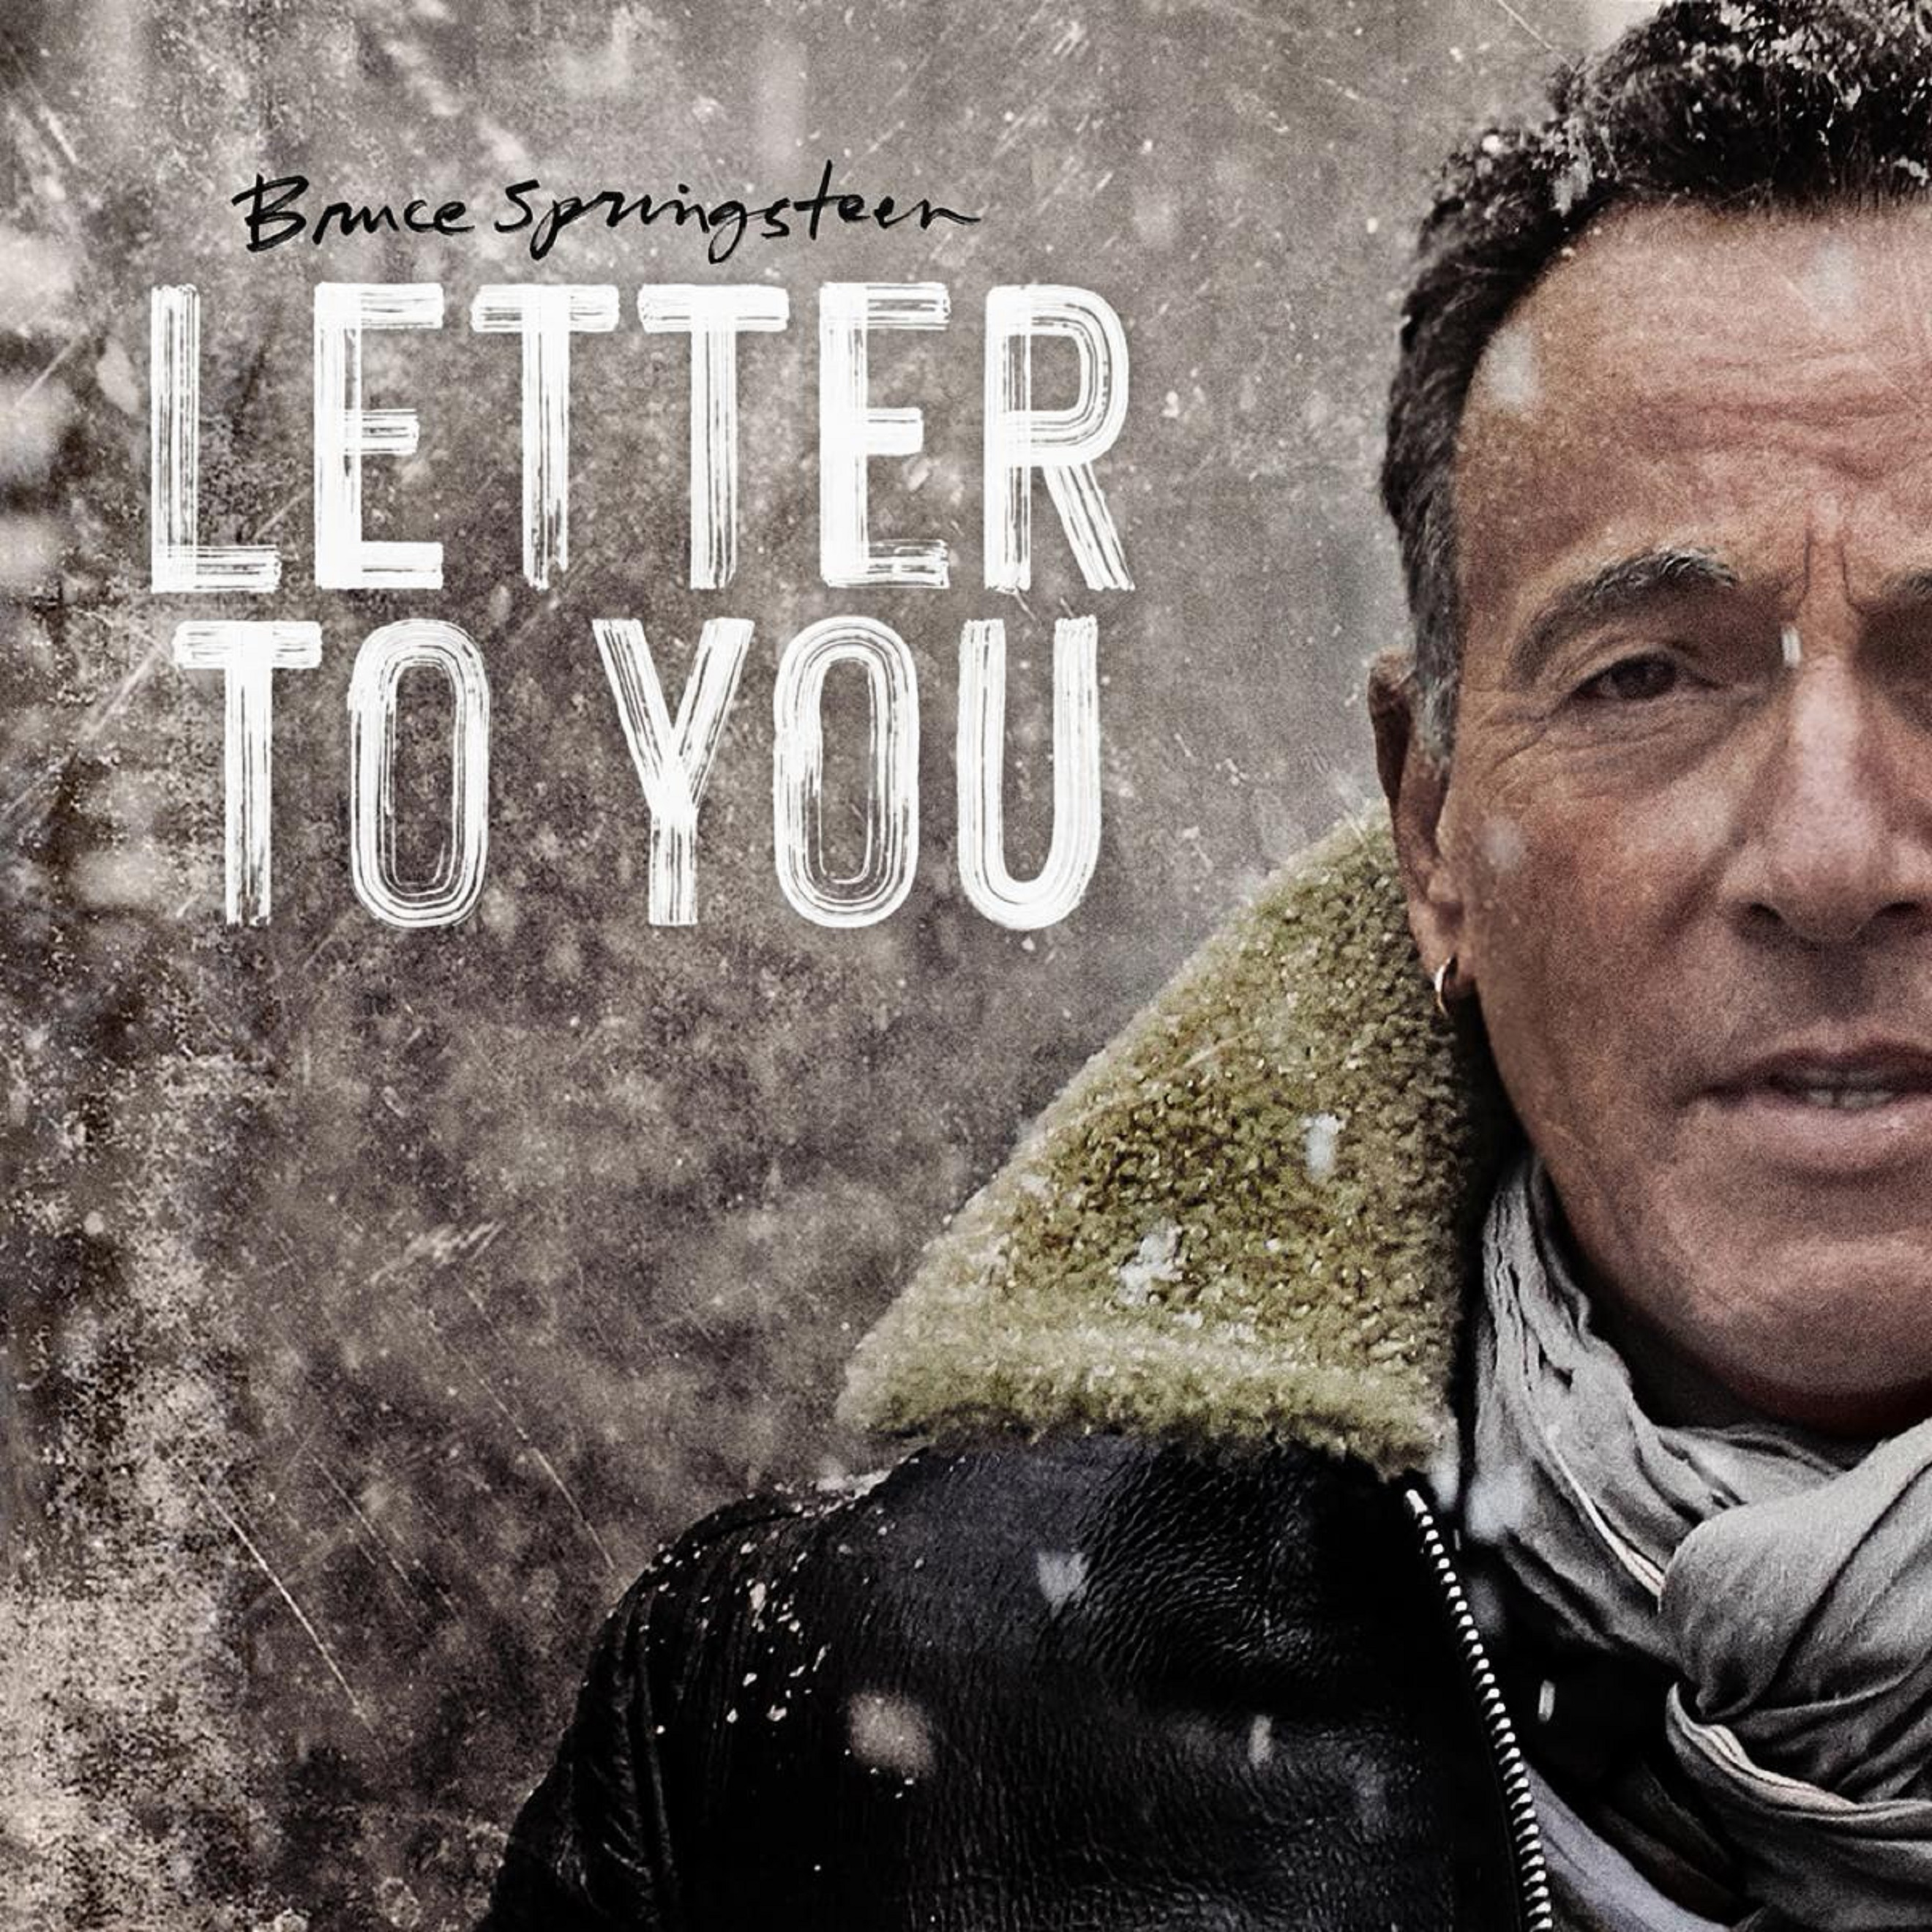 Bruce Springsteen's Letter To You Out October 23